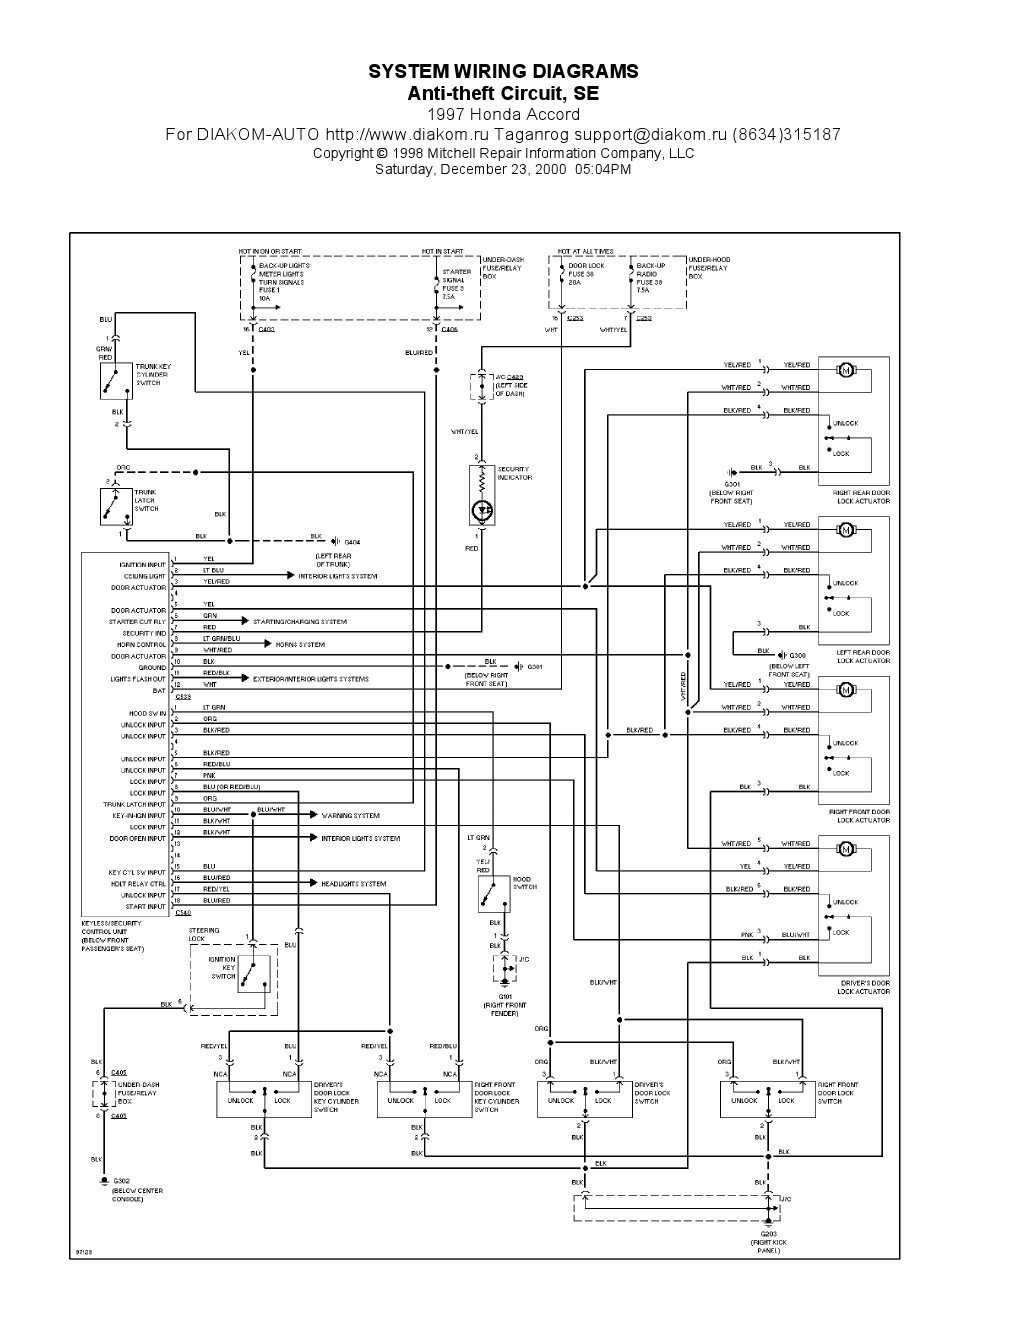 1997 Honda Accord Antitheft Circuit SE, System Wiring